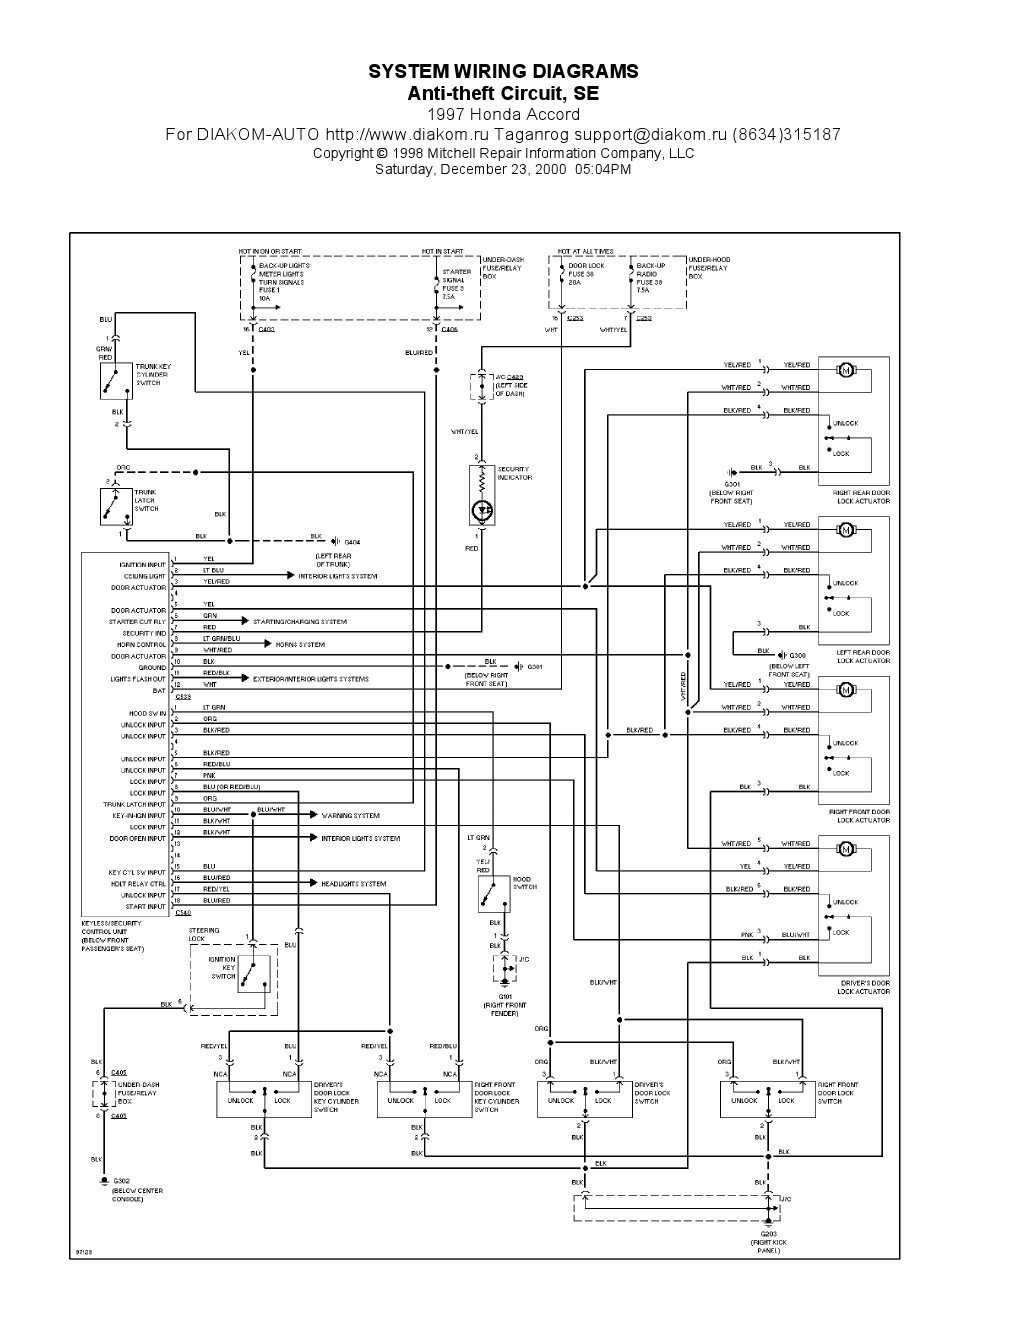 1997 Honda Accord Antitheft Circuit SE, System Wiring